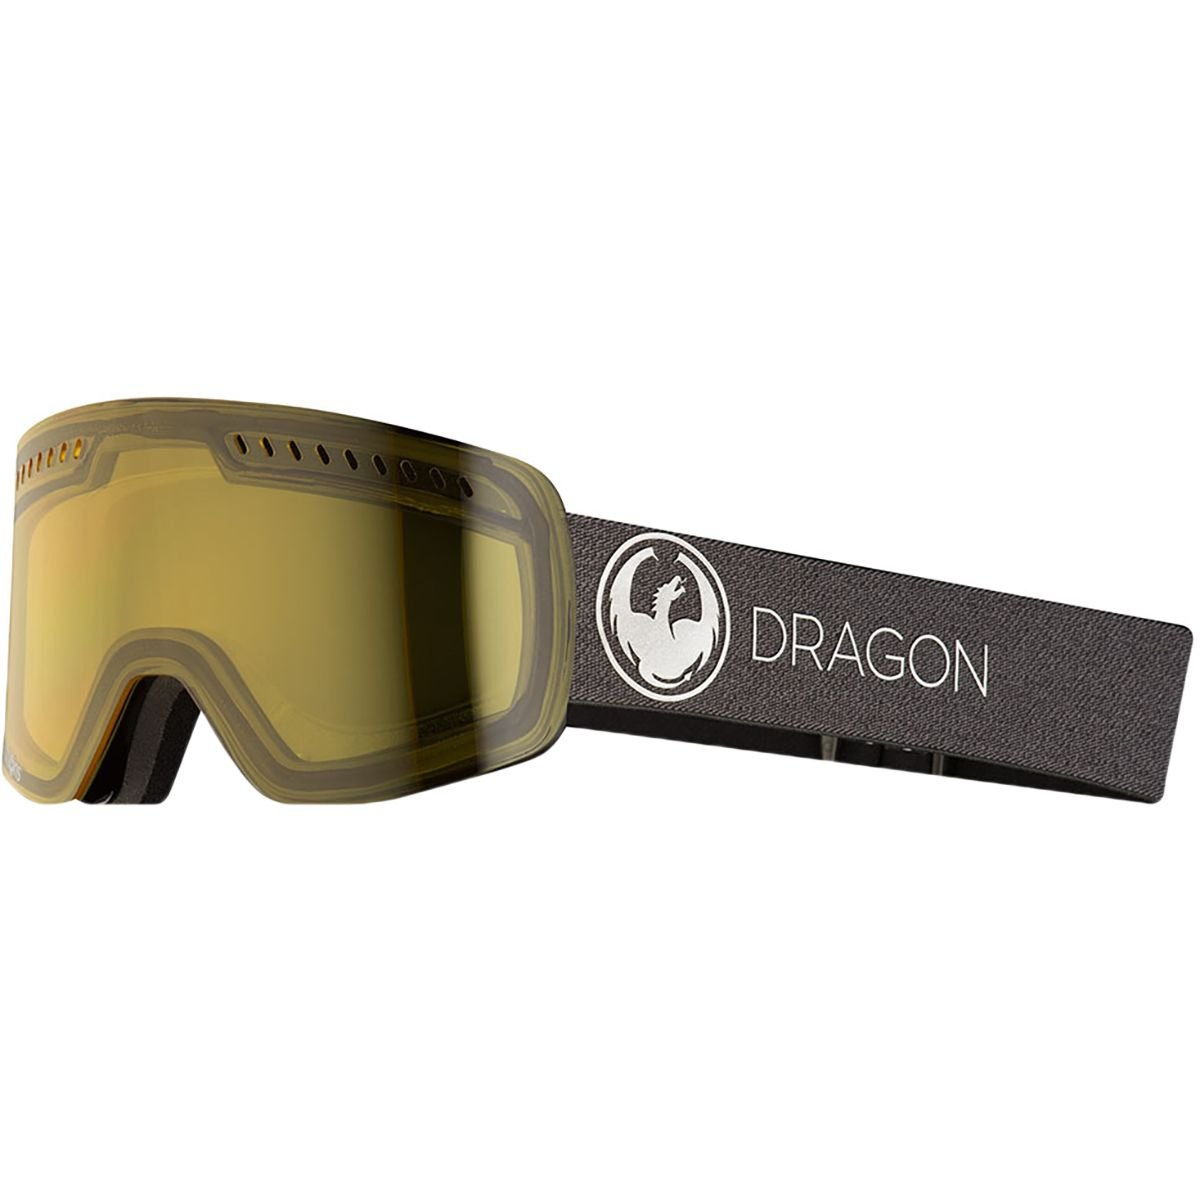 Dragon Alliance NFXs Ski Goggles